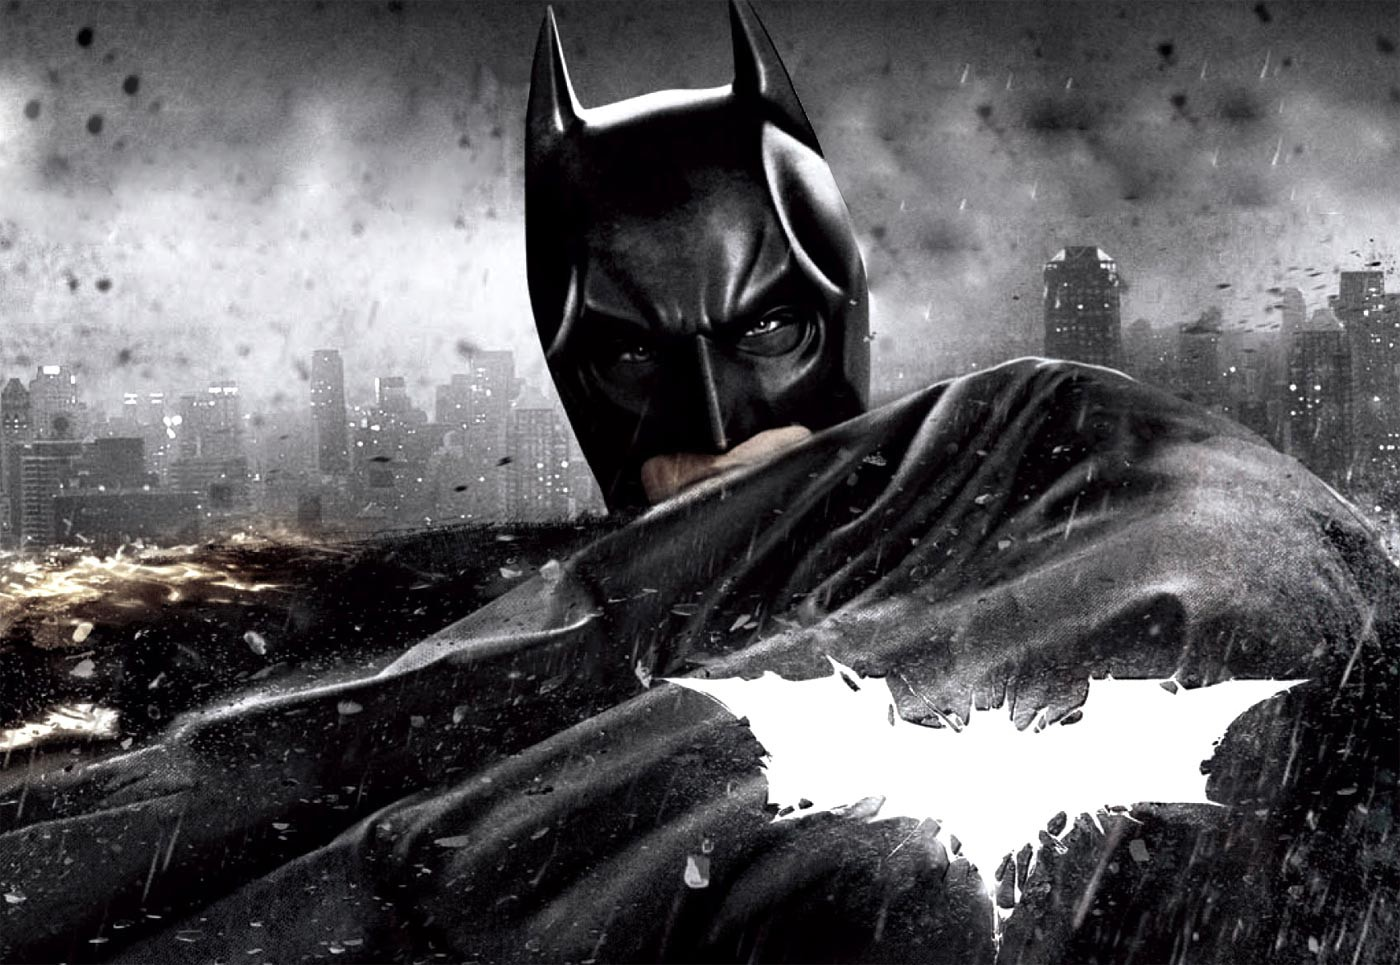 batman-dark-knight-rises.jpg